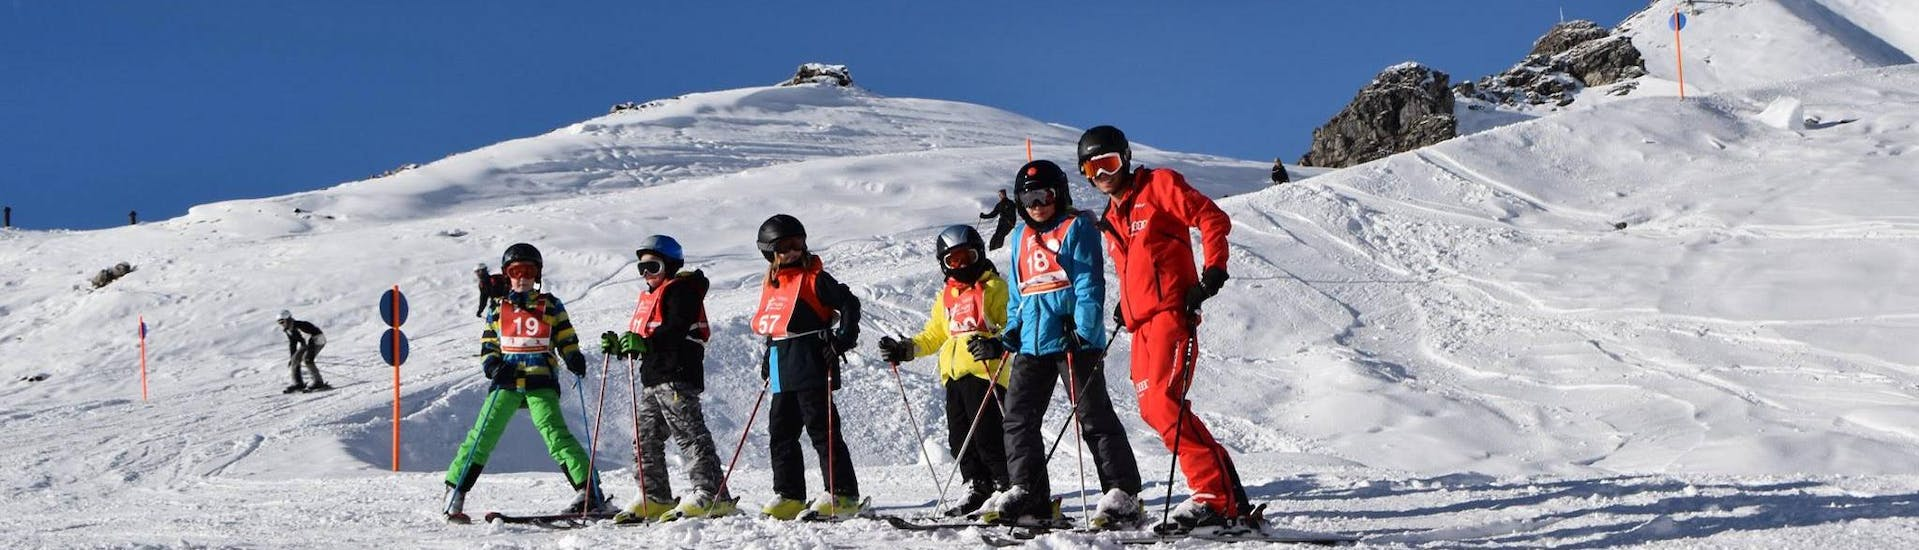 """During the Kids Ski Lessons """"All-in-One"""" (9-16 years) - All Levels, children are having fun with their ski instructor from the ski school Neue Skischule Oberstdorf."""